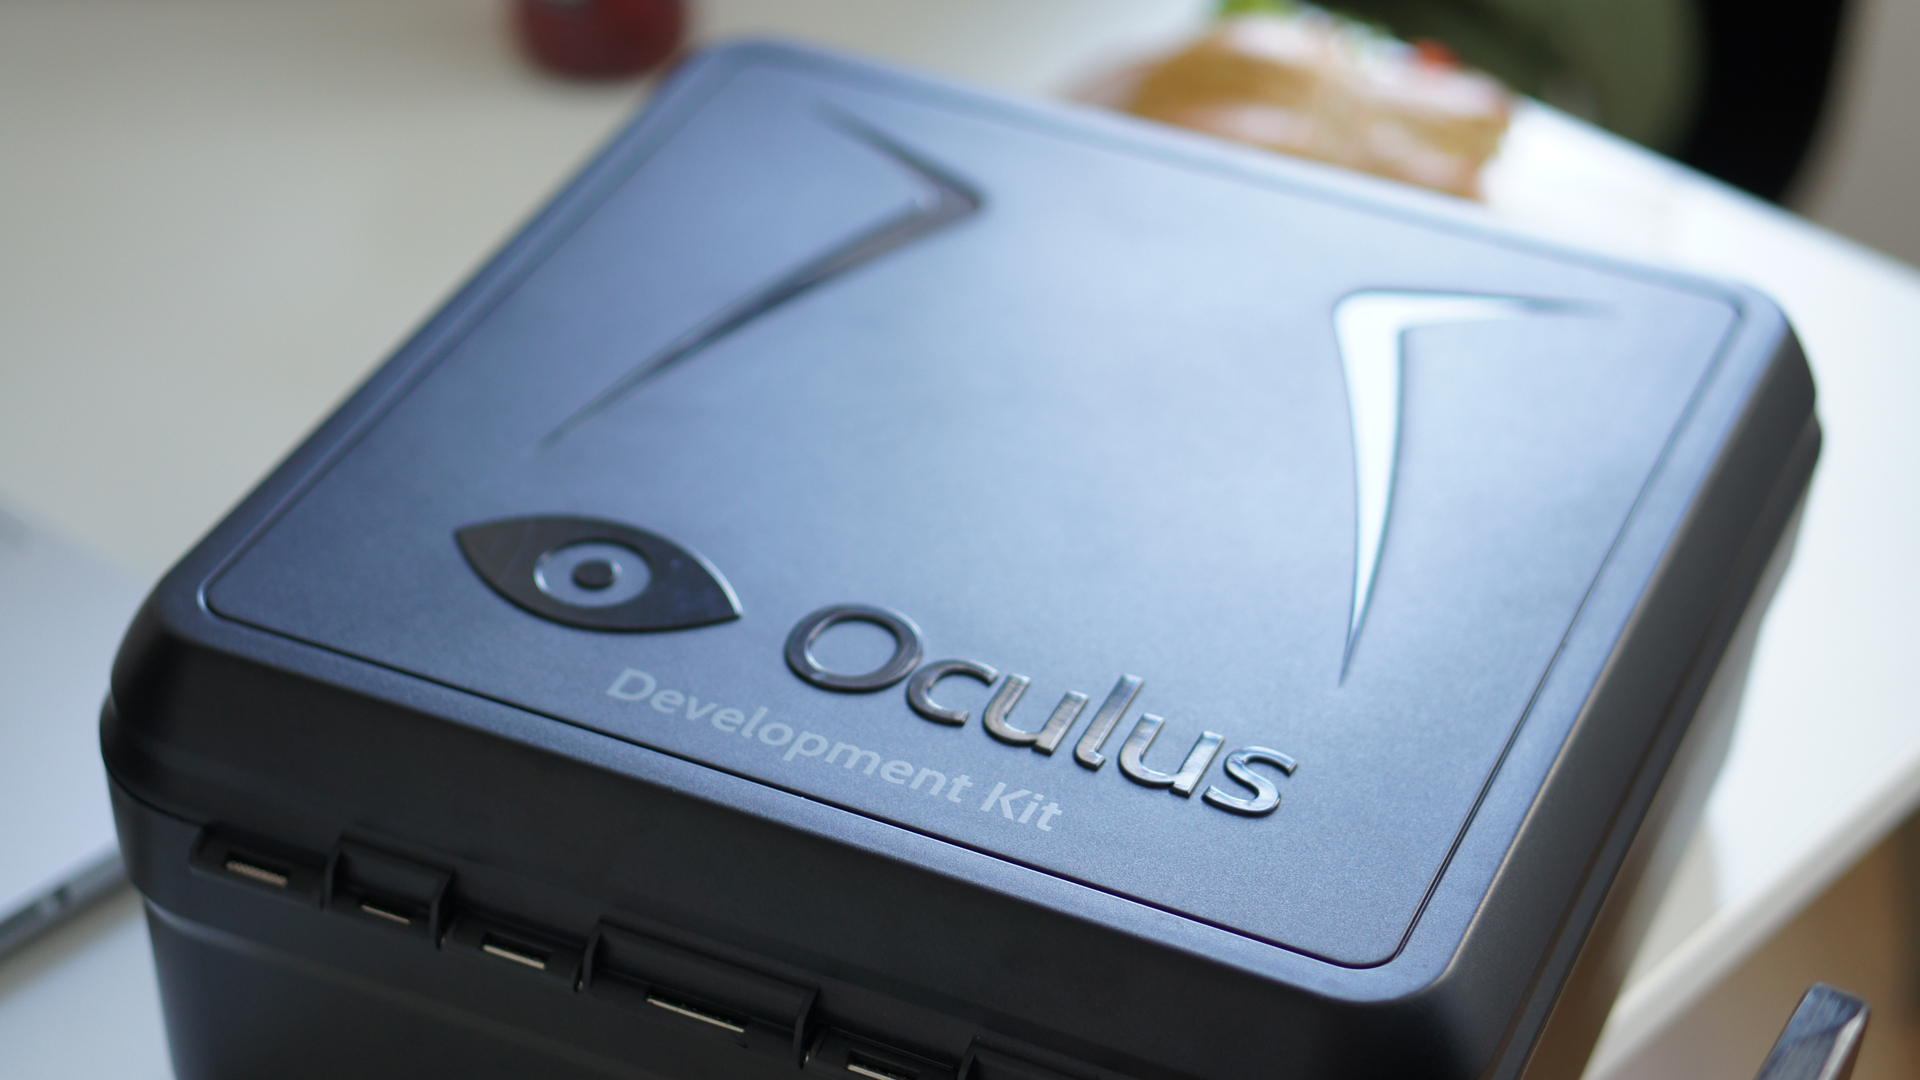 Preparing for the Oculus Rift